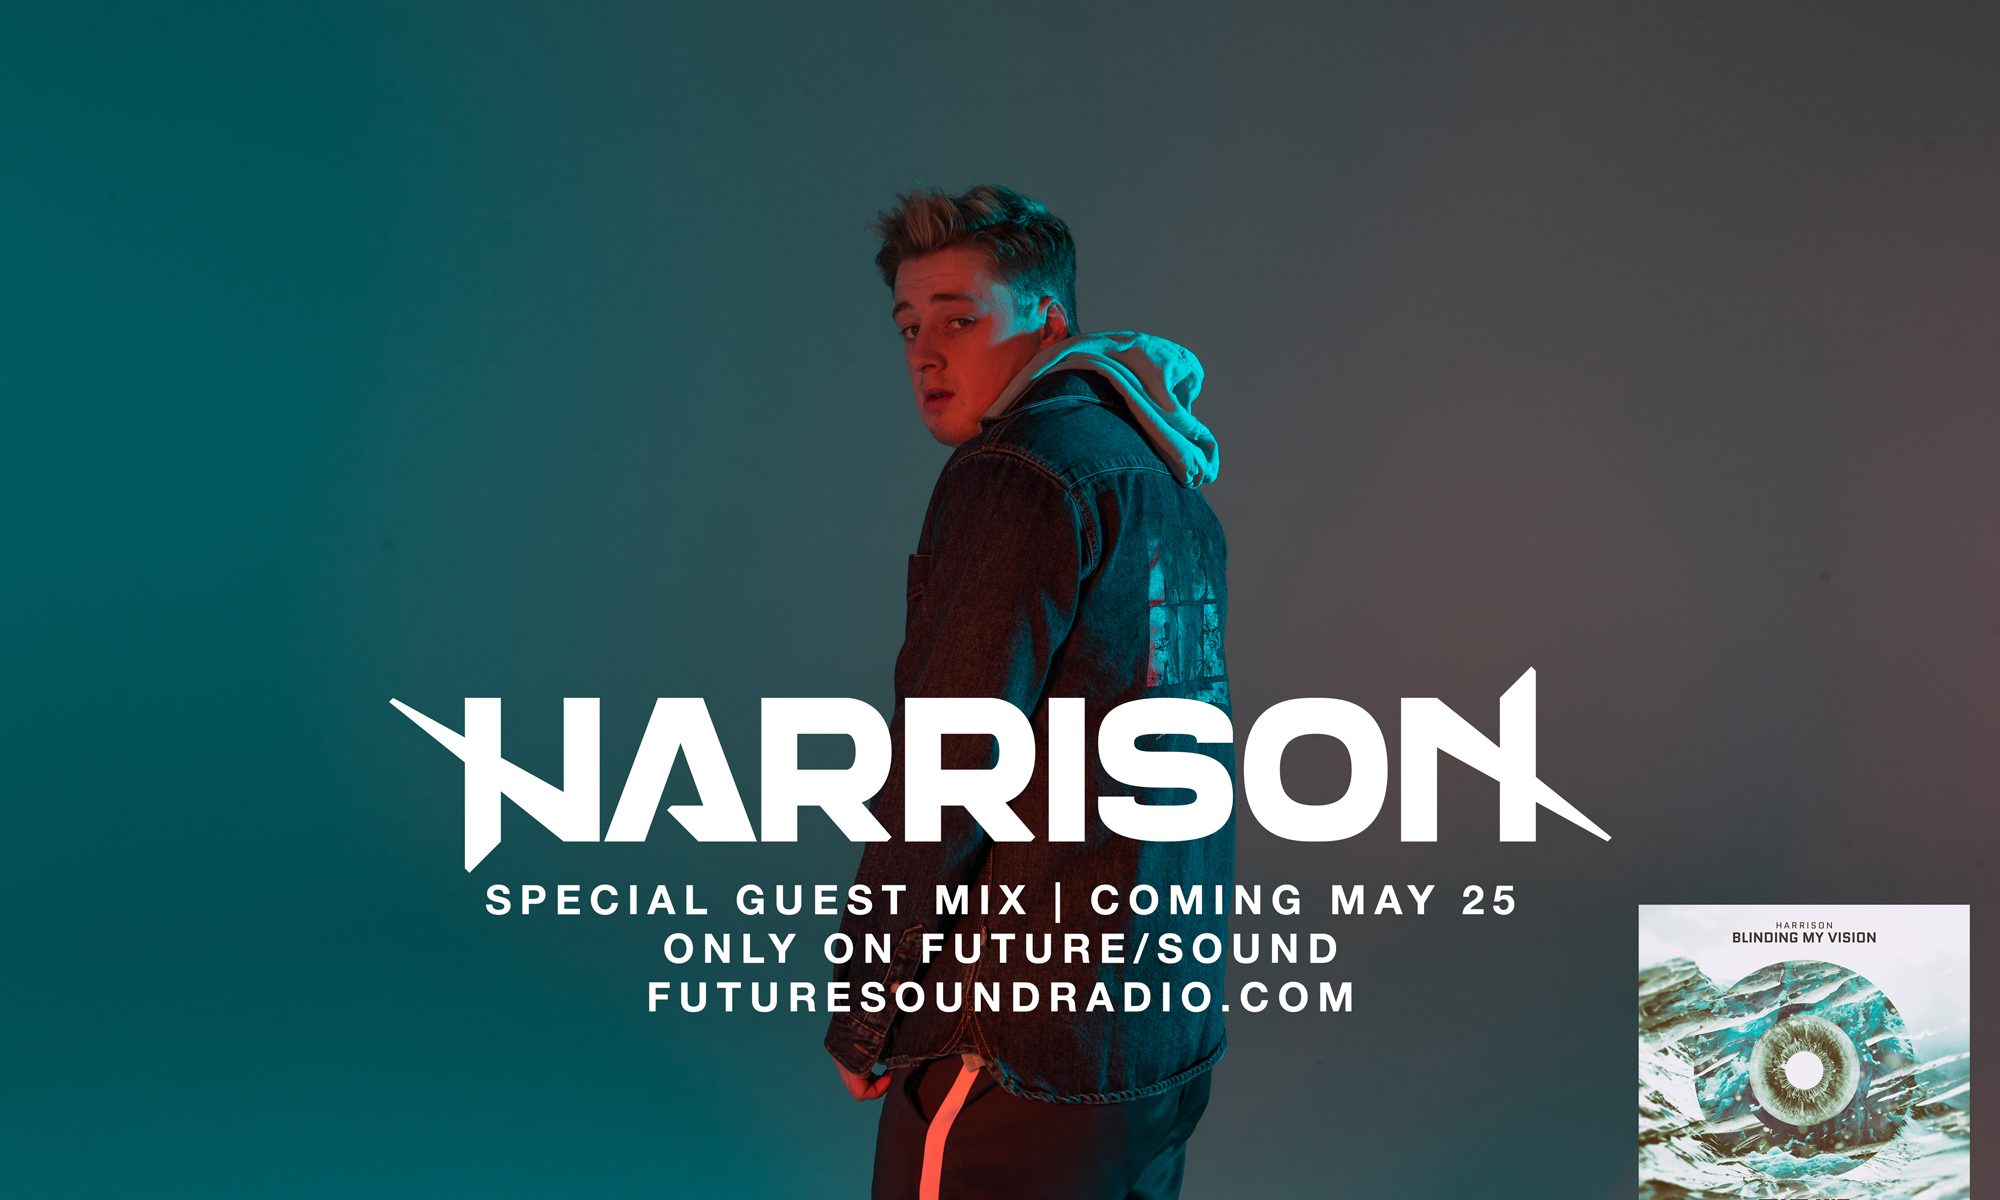 Special Guest Mix from Harrison | Coming May 25, only on FutureSound with CUSCINO